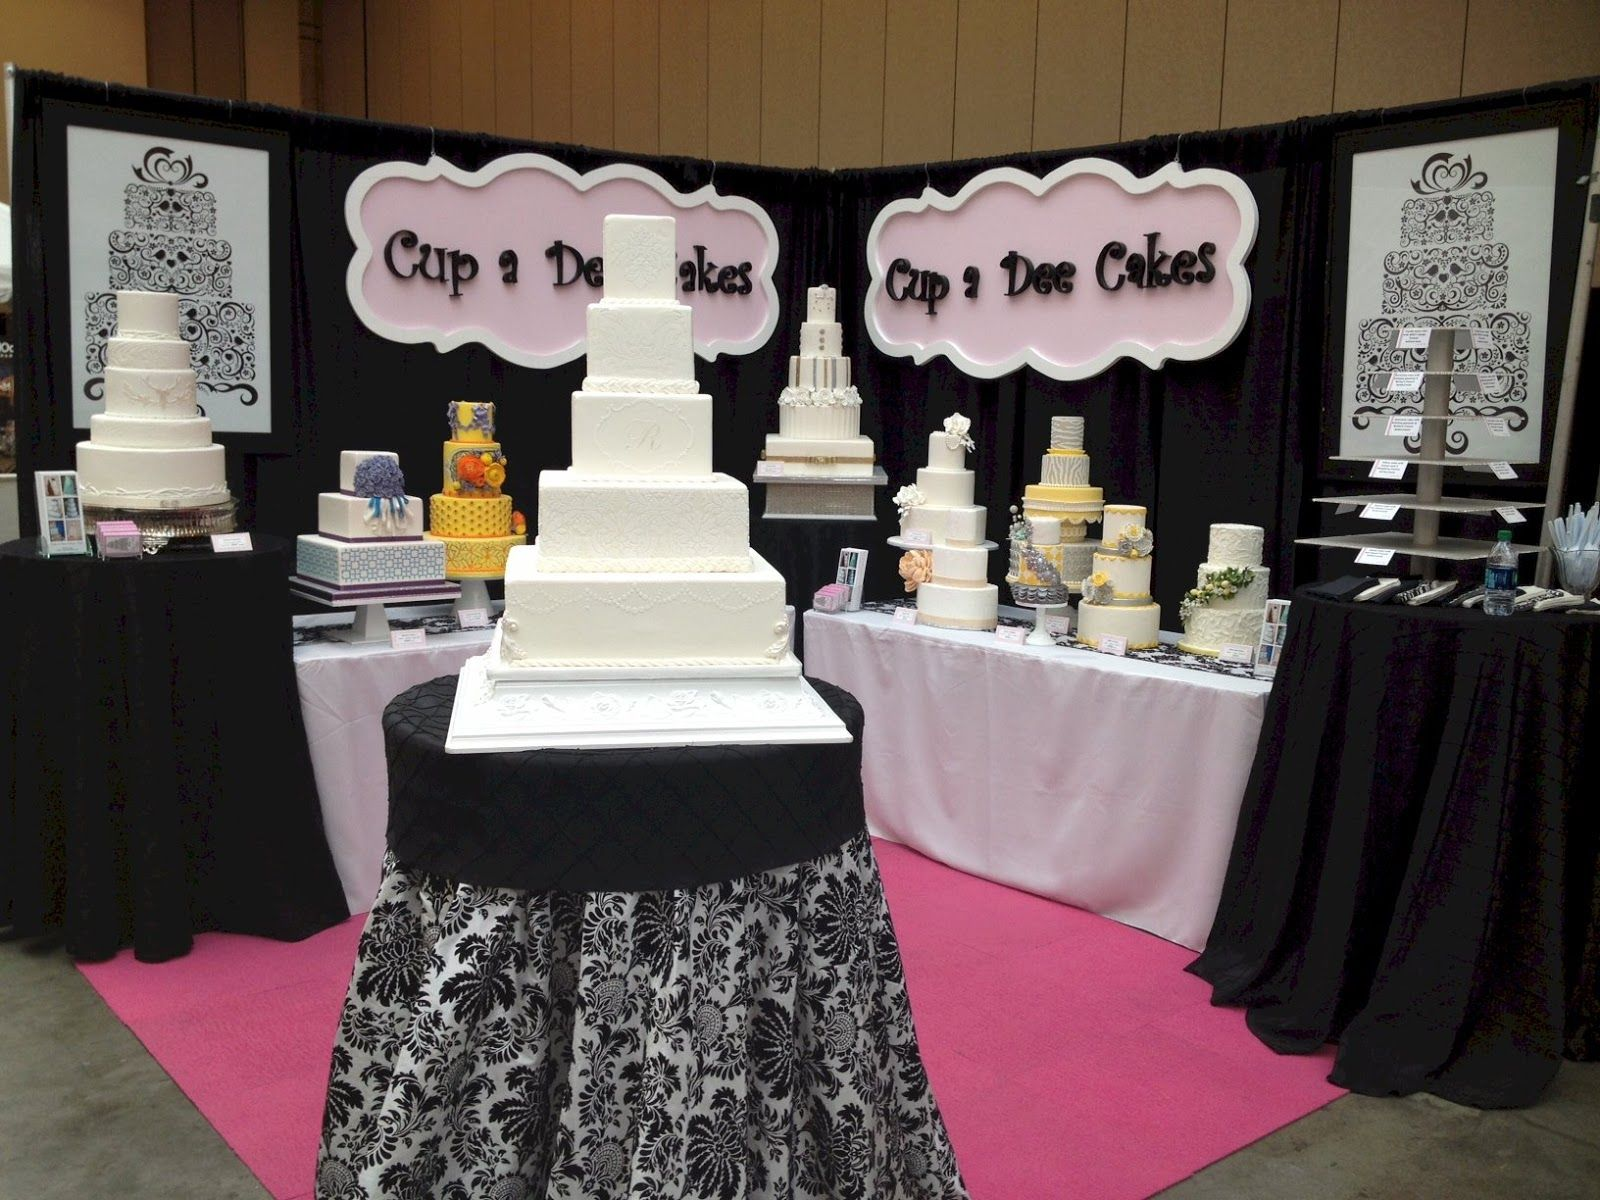 Bridal shows in illinois - Bridal Show Cake Booth Bridal Show Booths Revisited